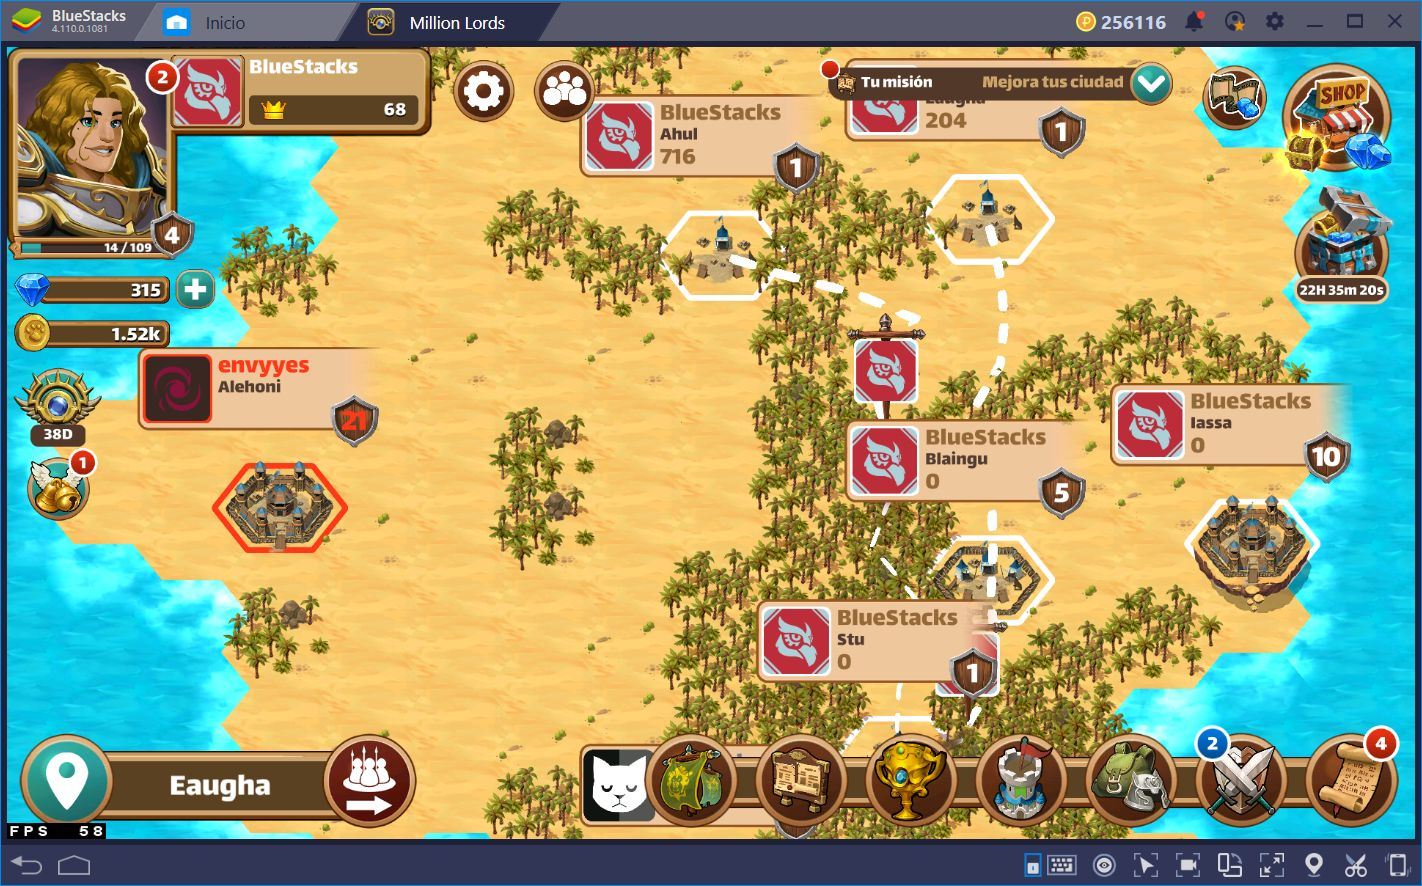 Conquistando el Reino en Million Lords con BlueStacks